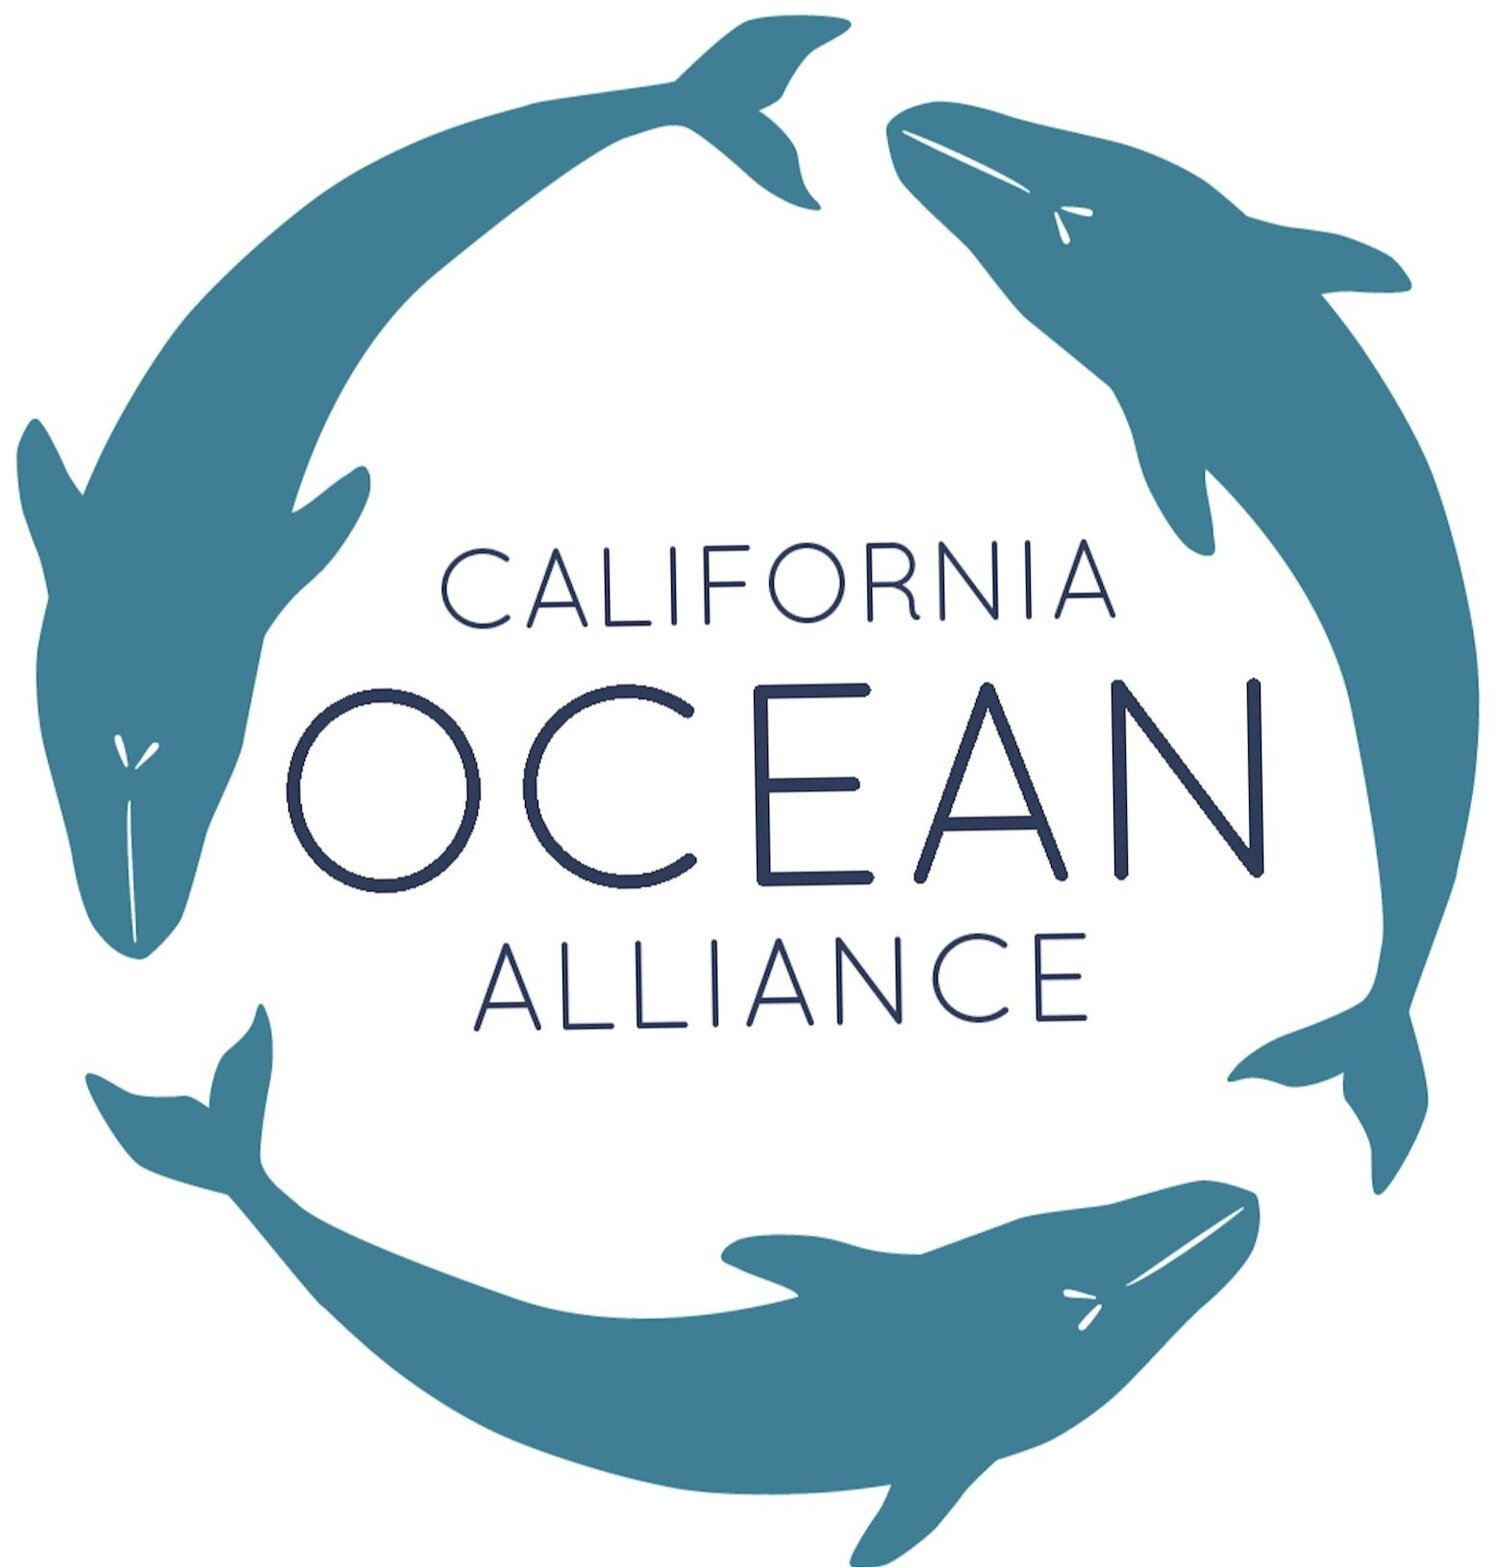 California Ocean Alliance